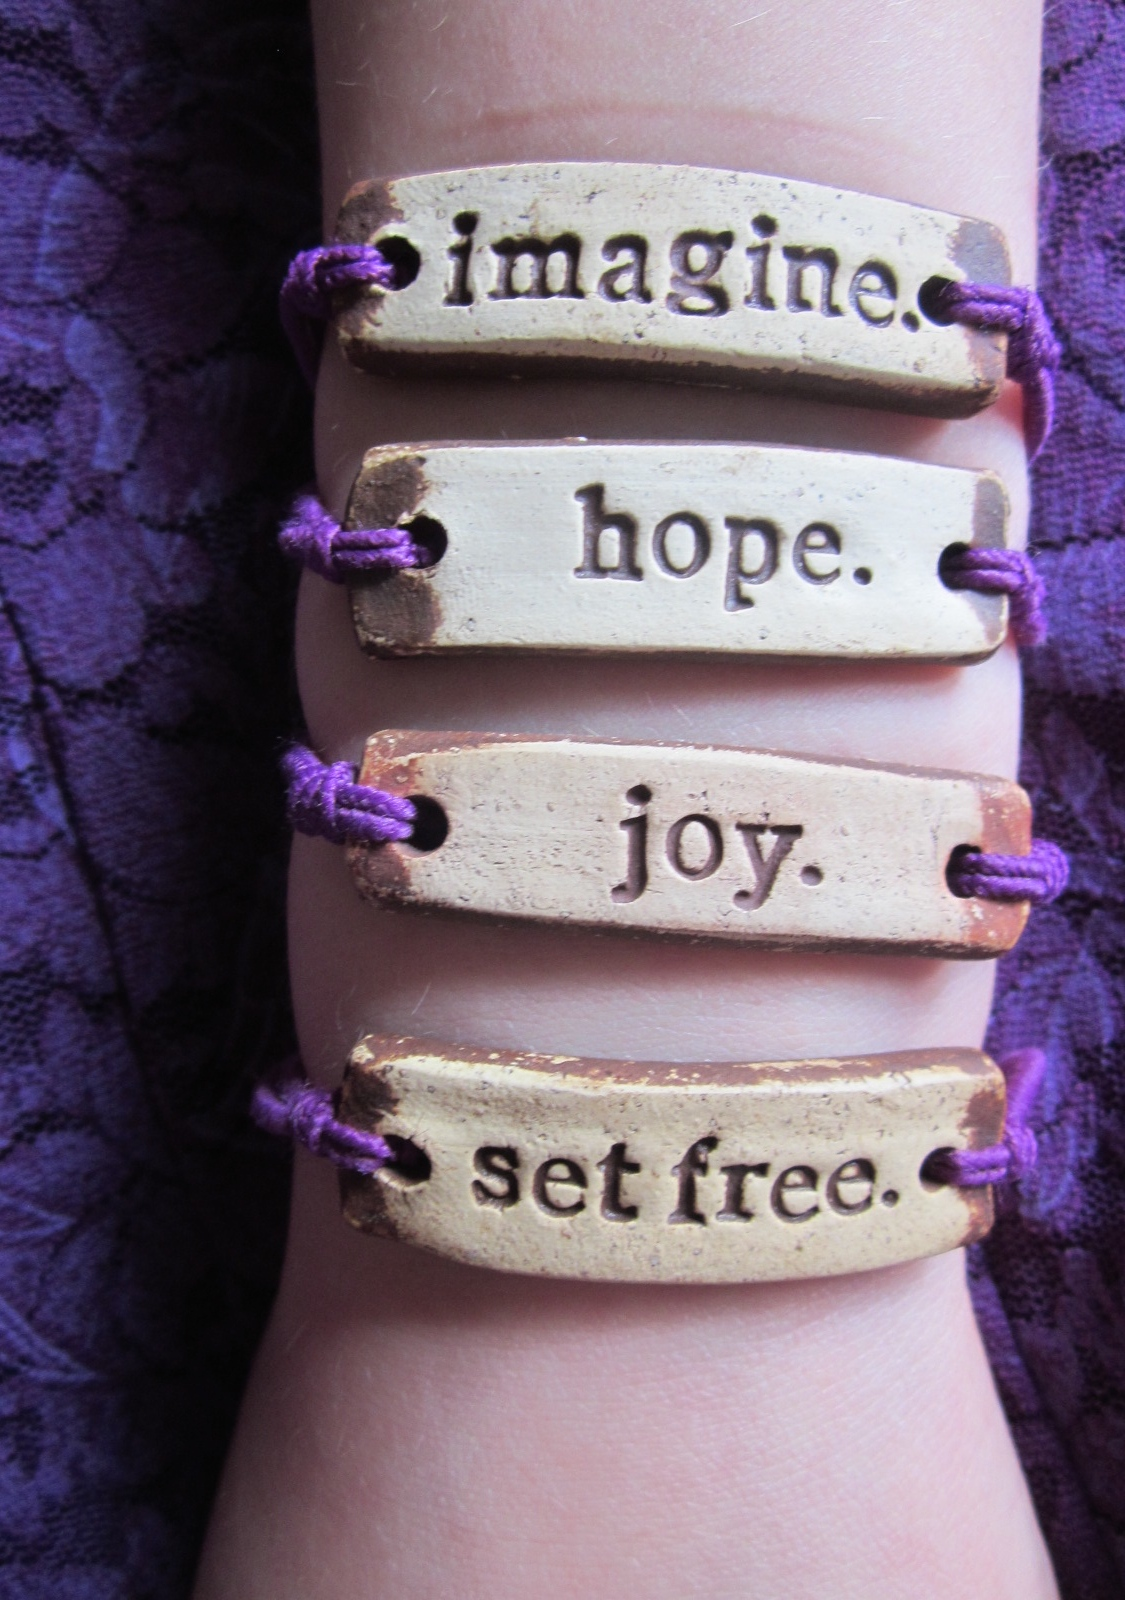 bracelets diabetic e an alert on seizures pinterest pillreminders awareness images bracelet seizure consider love or suffer someone you from best living do epilepsy